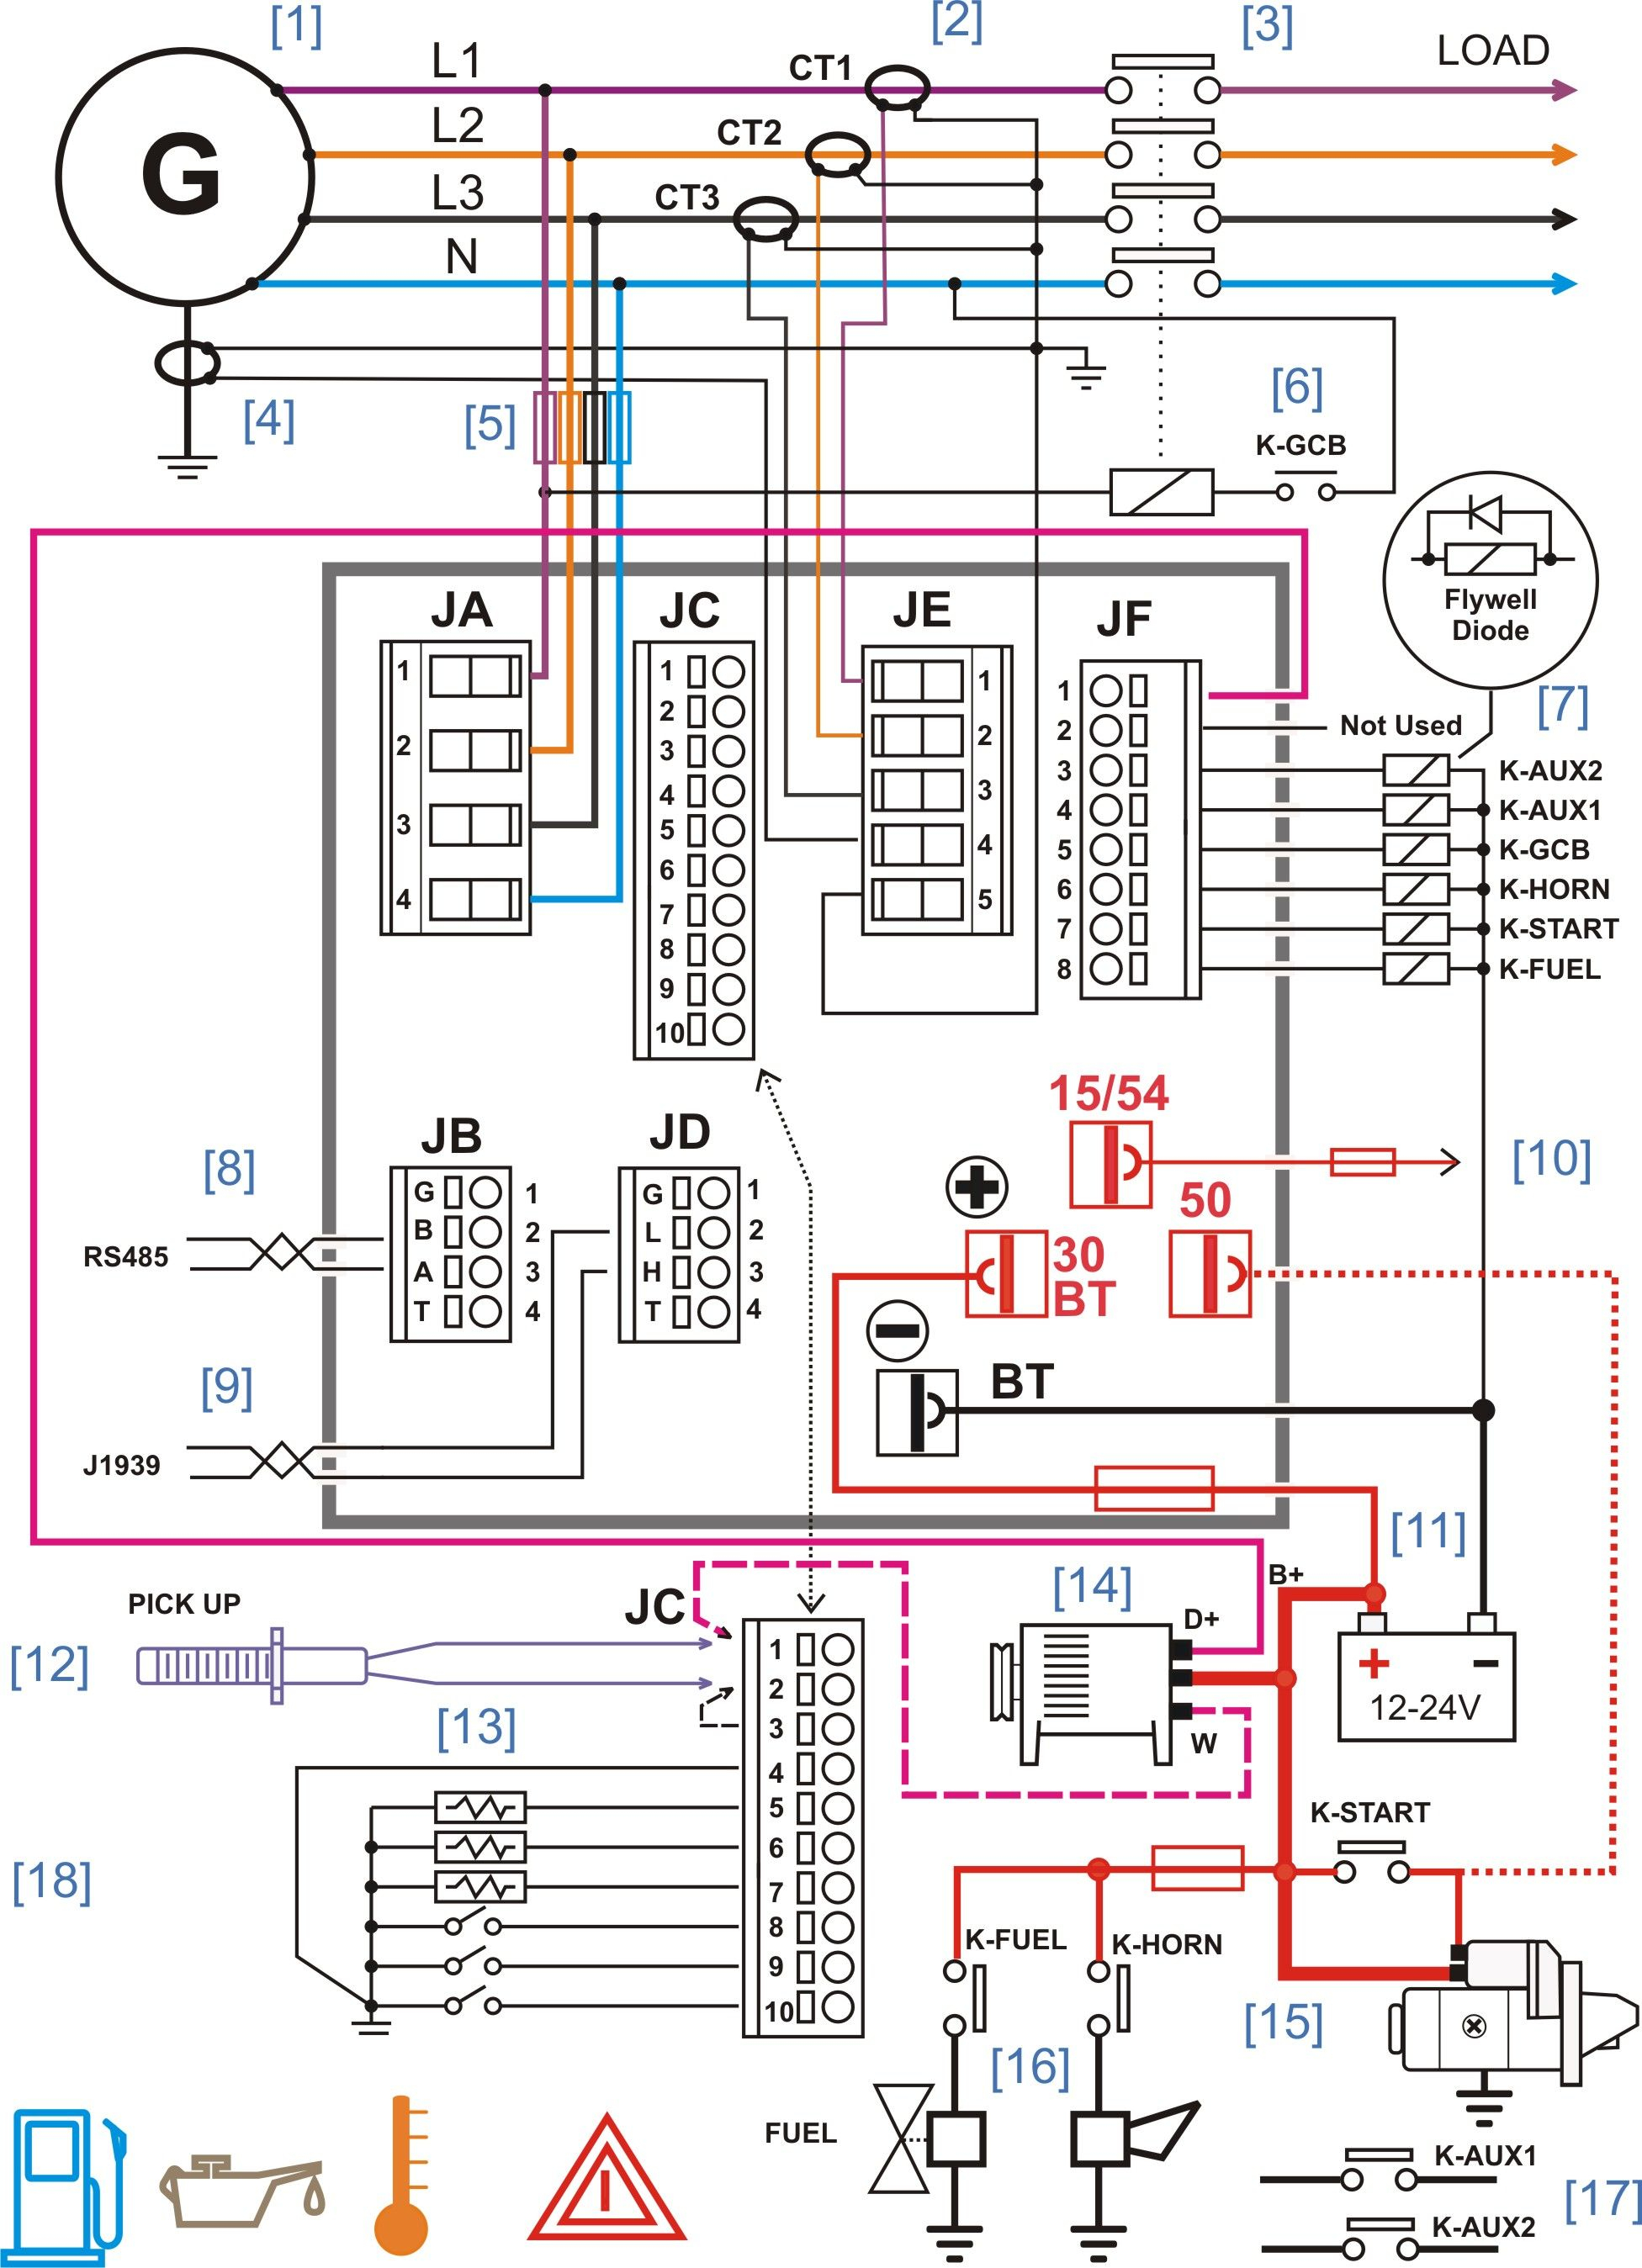 Generator wiring diagram and electrical schematics pdf download wiring diagram images detail name generator wiring diagram and electrical schematics pdf diesel generator control panel wiring diagram asfbconference2016 Choice Image